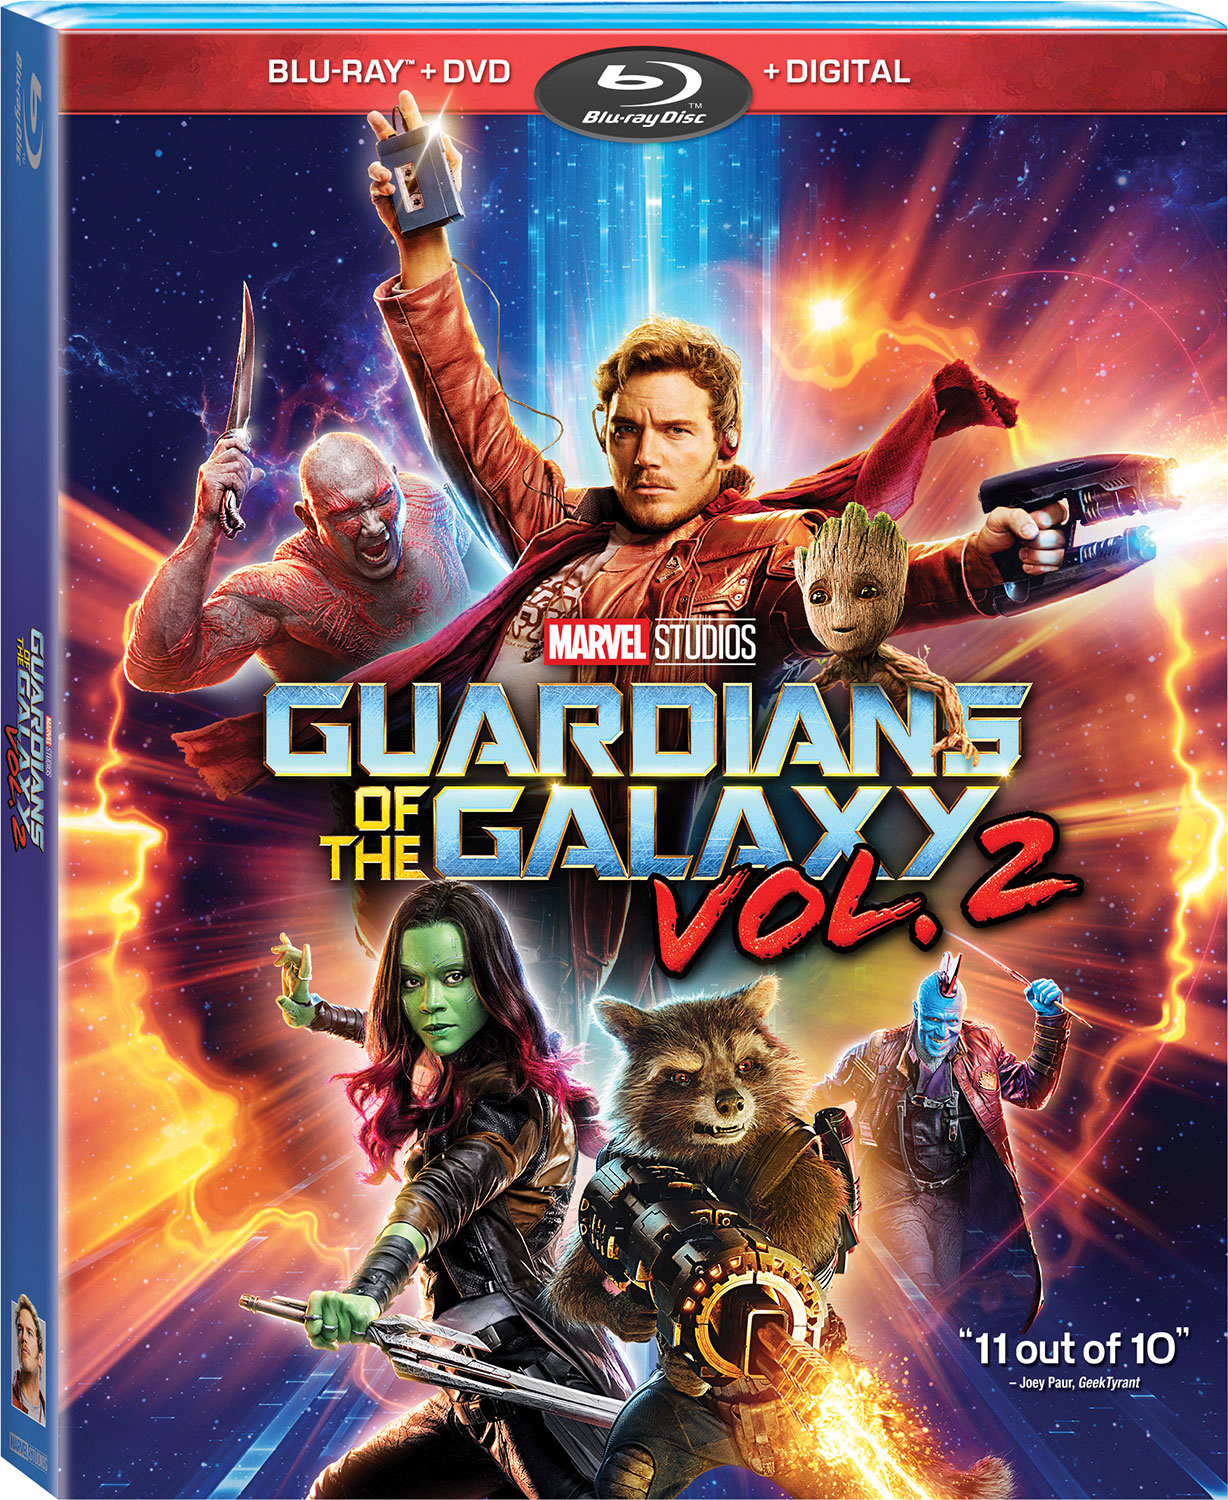 Guardians_of_the_Galaxy_Vol_2_Bluray_DVD_Digital_HD